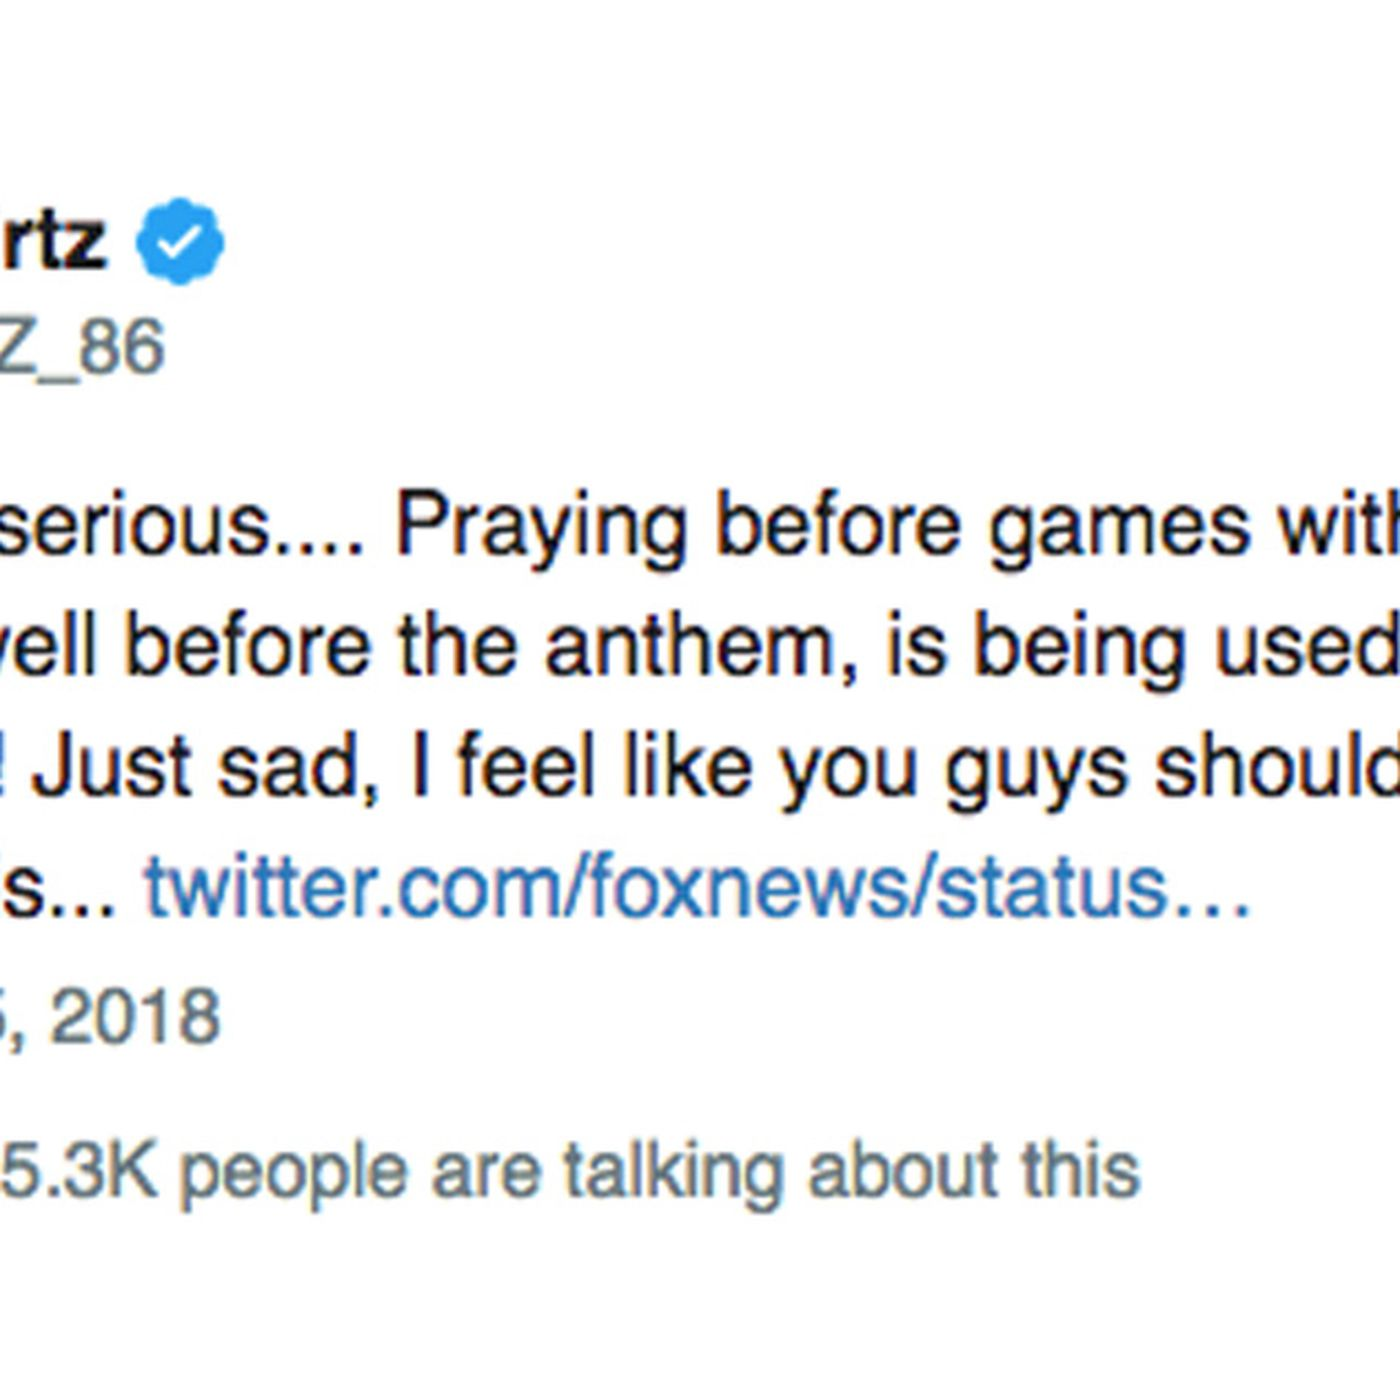 Eagles call out Fox News for portraying pregame prayer as